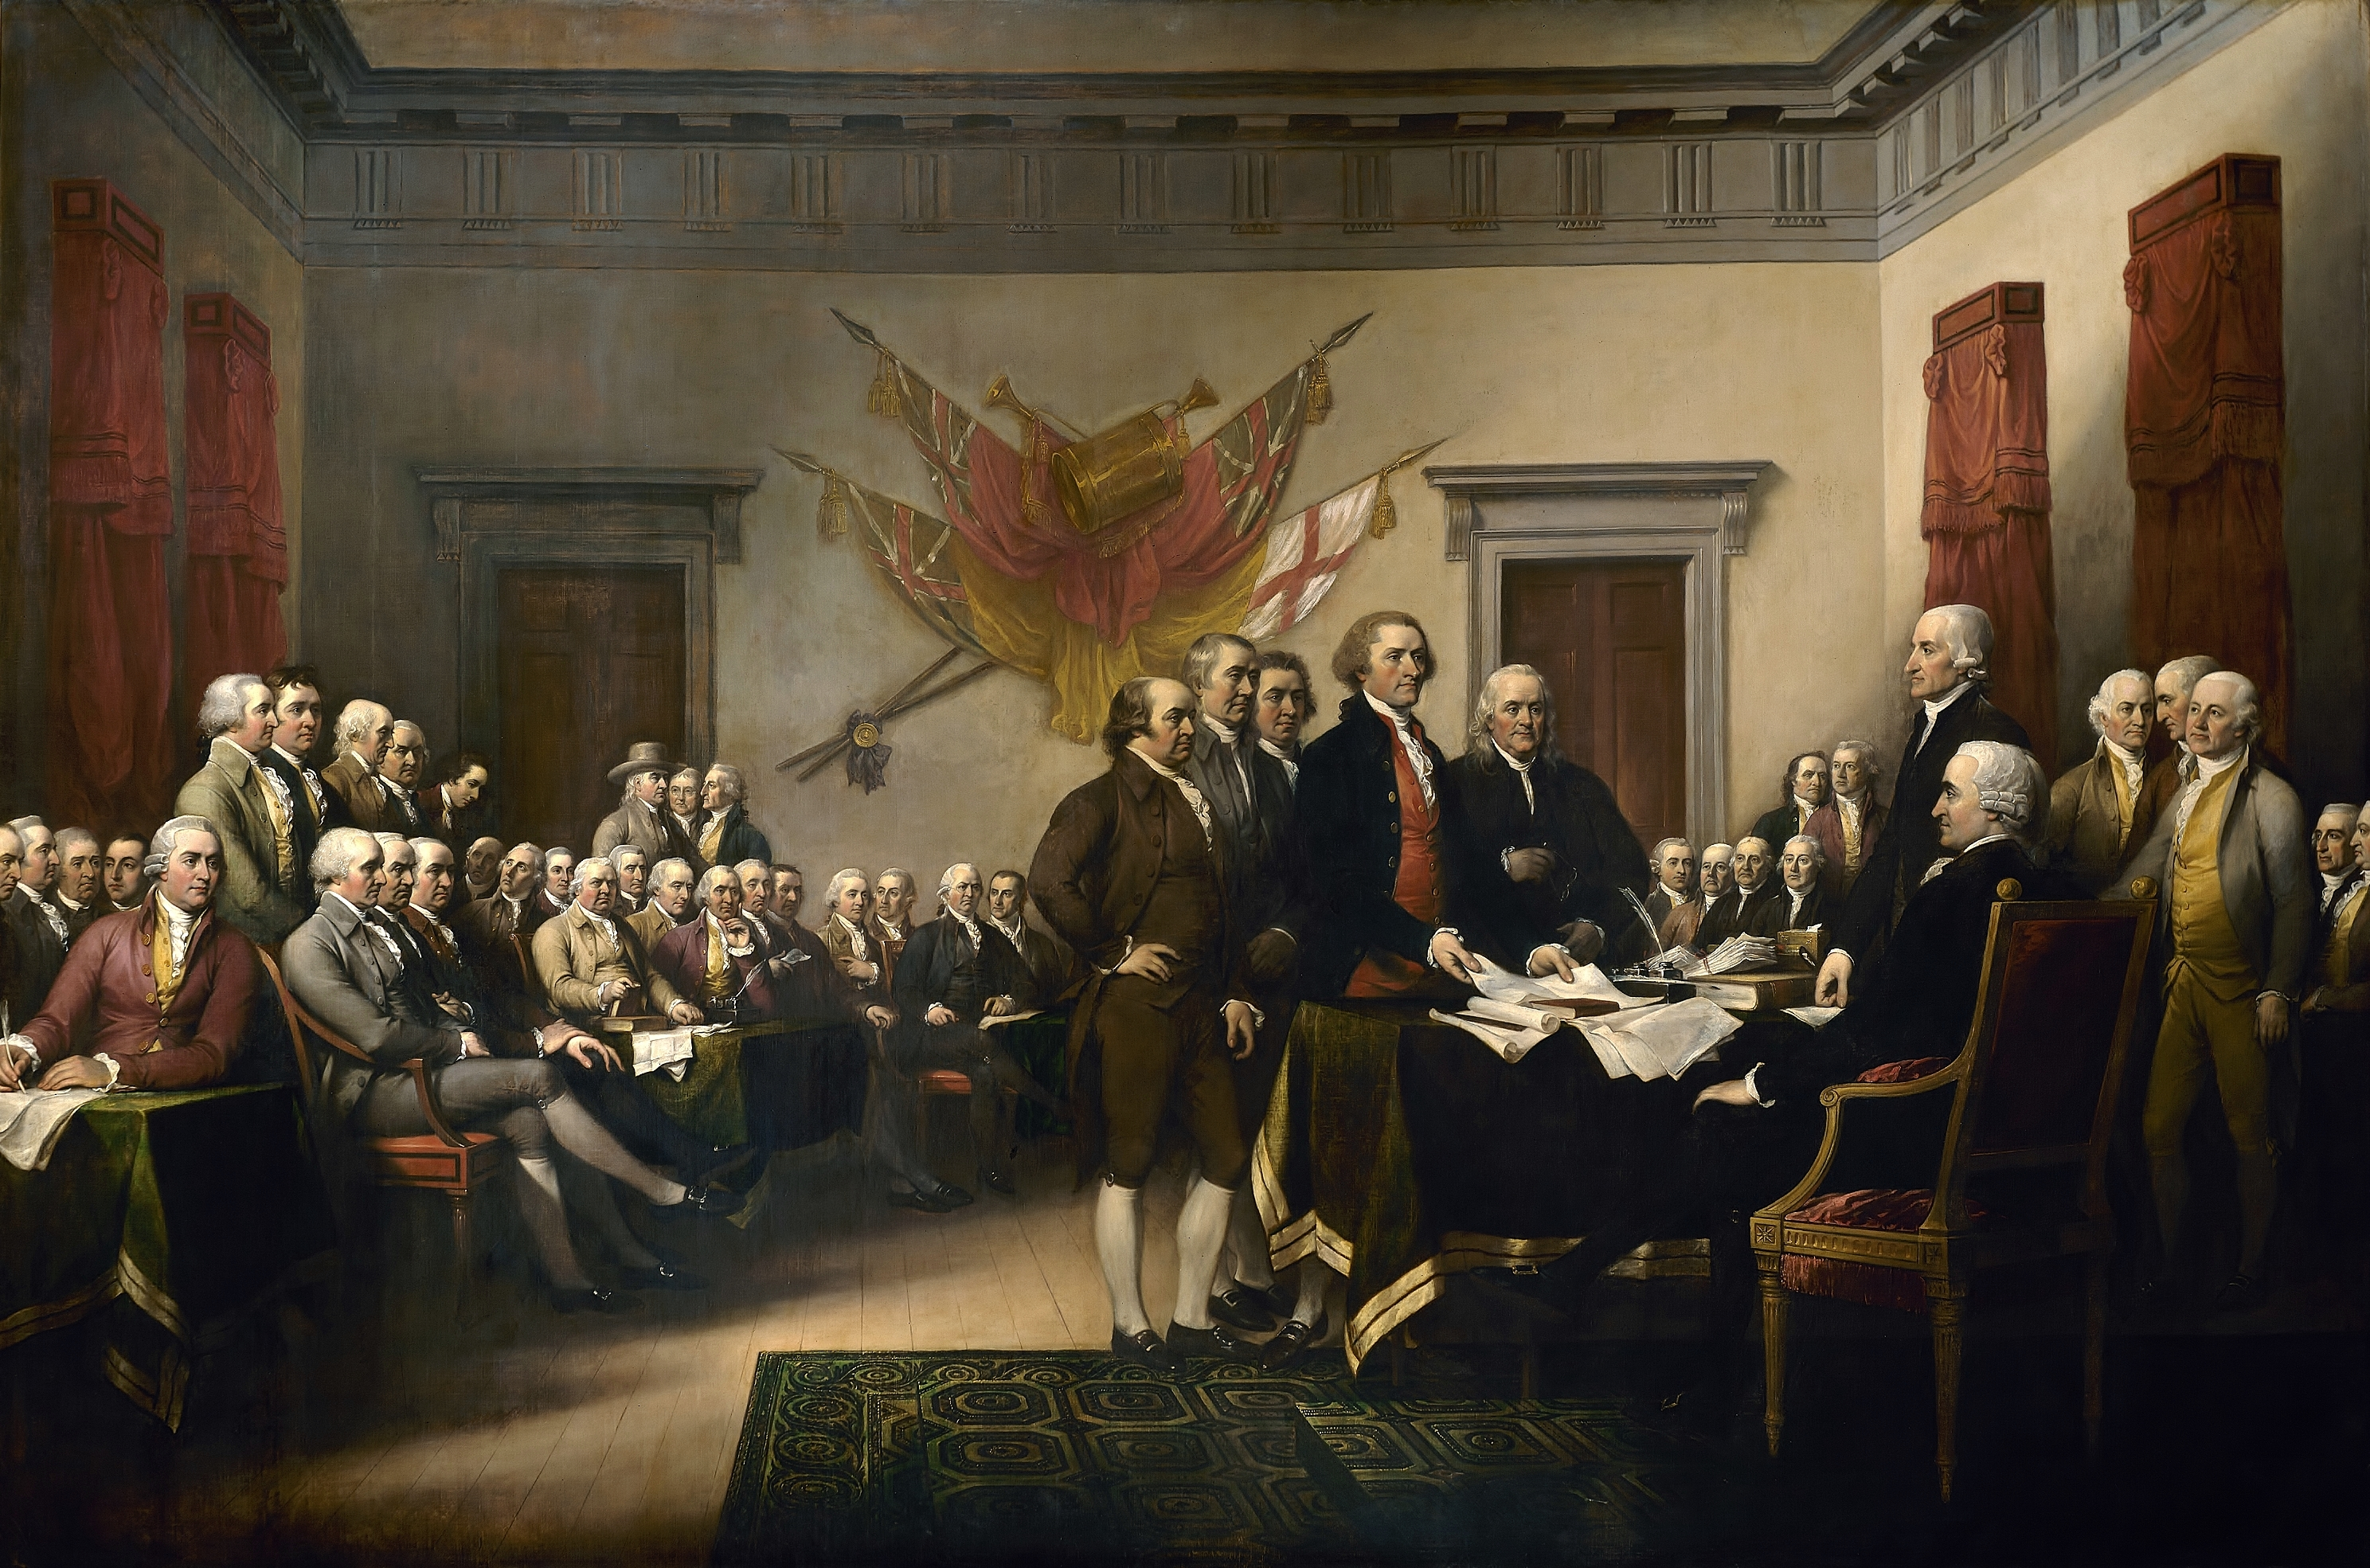 Declaration of Independence by John Trumbull